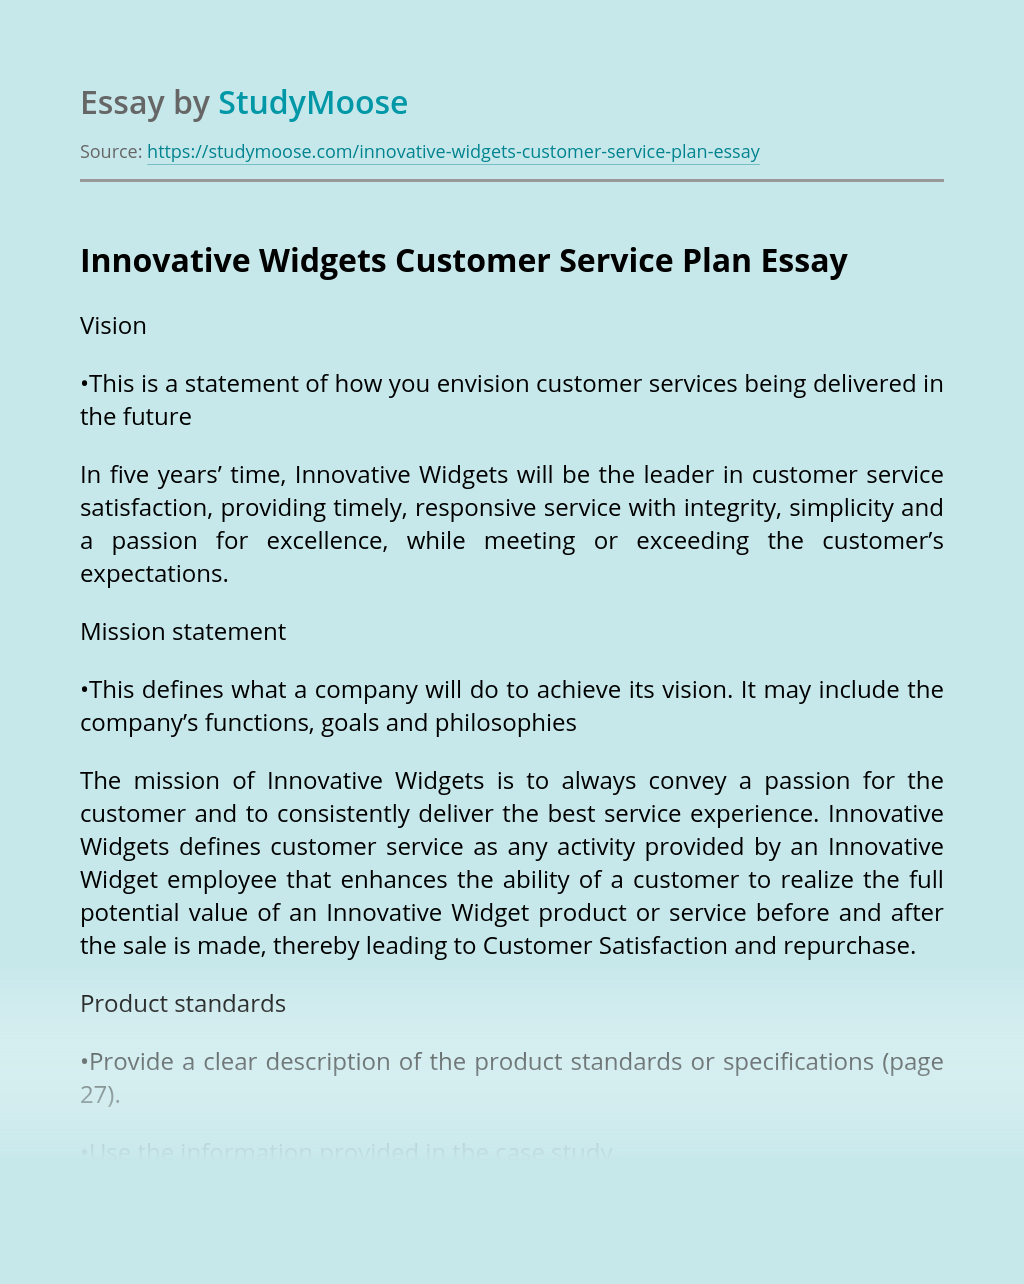 Innovative Widgets Customer Service Plan